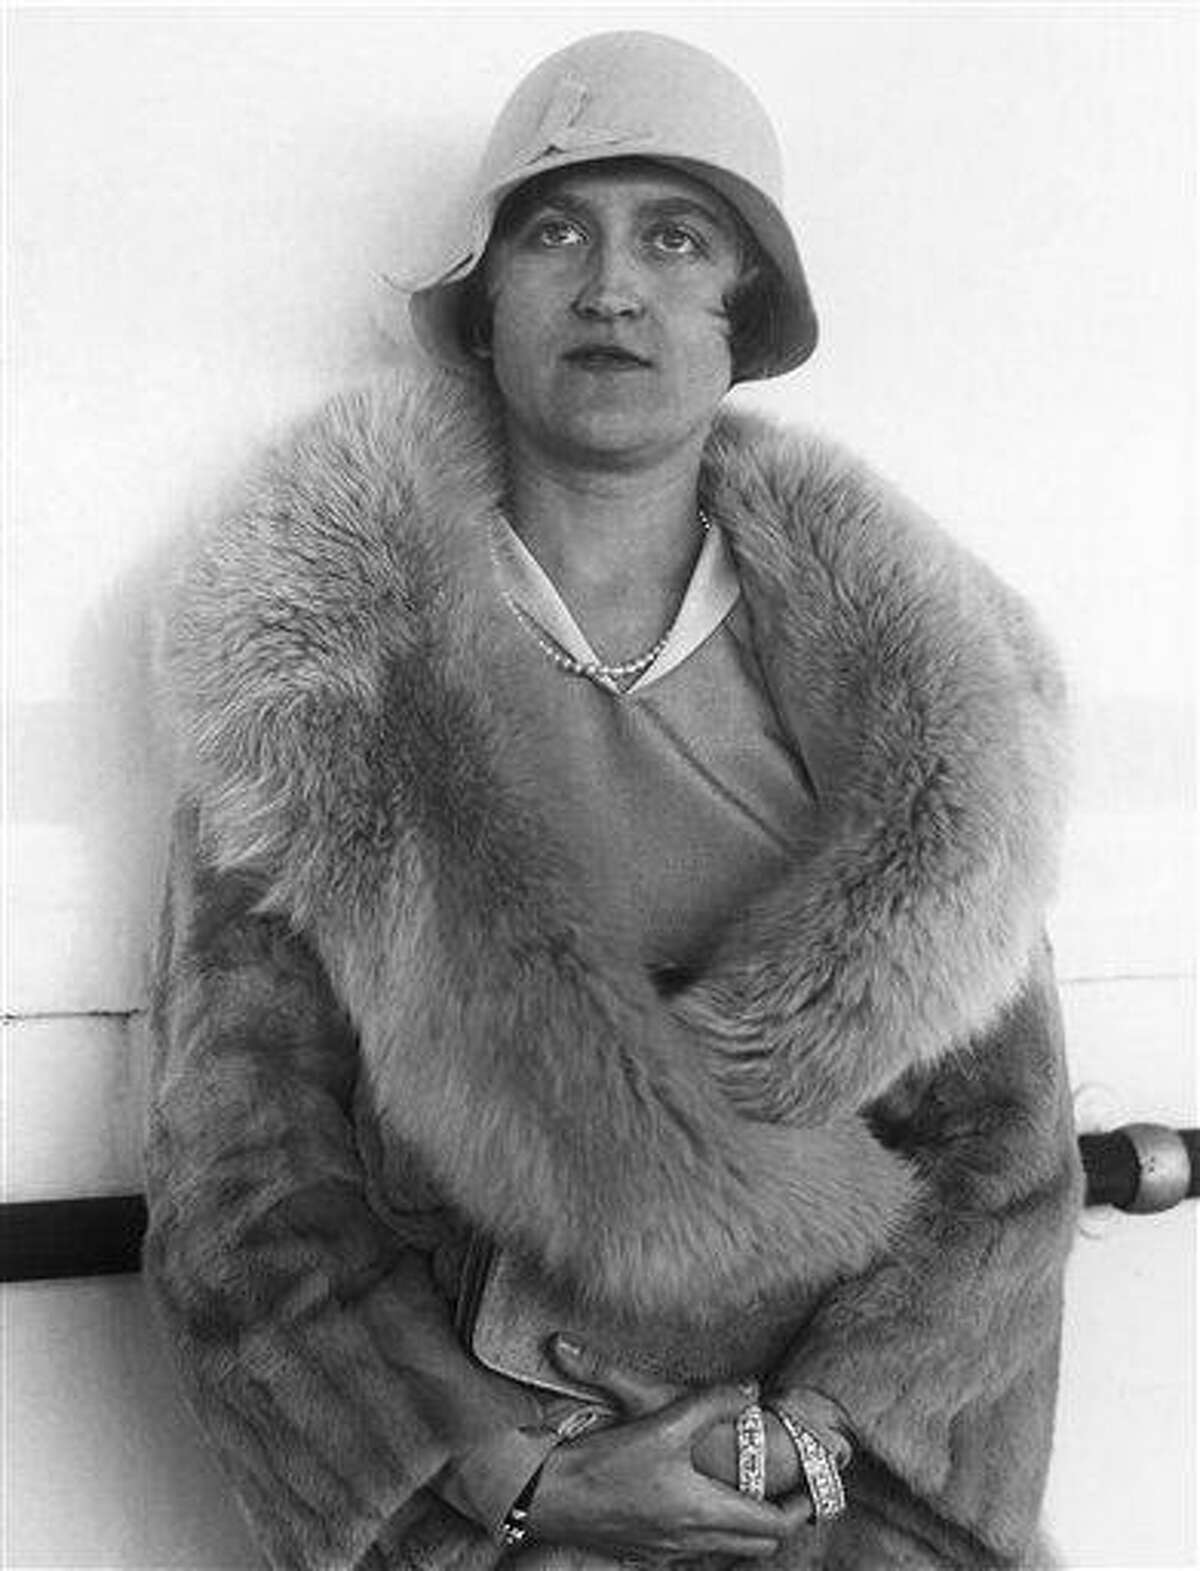 In this 1930 file photo, Huguette Clark, daughter of the late copper magnate Sen. William A. Clark of Montana, is seen in Reno, Nev., after being granted a divorce. An official overseeing Clark's estate says that recipients of gifts lavished upon them during the reclusive multimillionaire's long life must return a whopping $37 million of the $400 million estate because they allegedly maneuvered and exploited Clark, who died last year at 104. A separate fight is roiling over what will ultimately become of her money. Associated Press